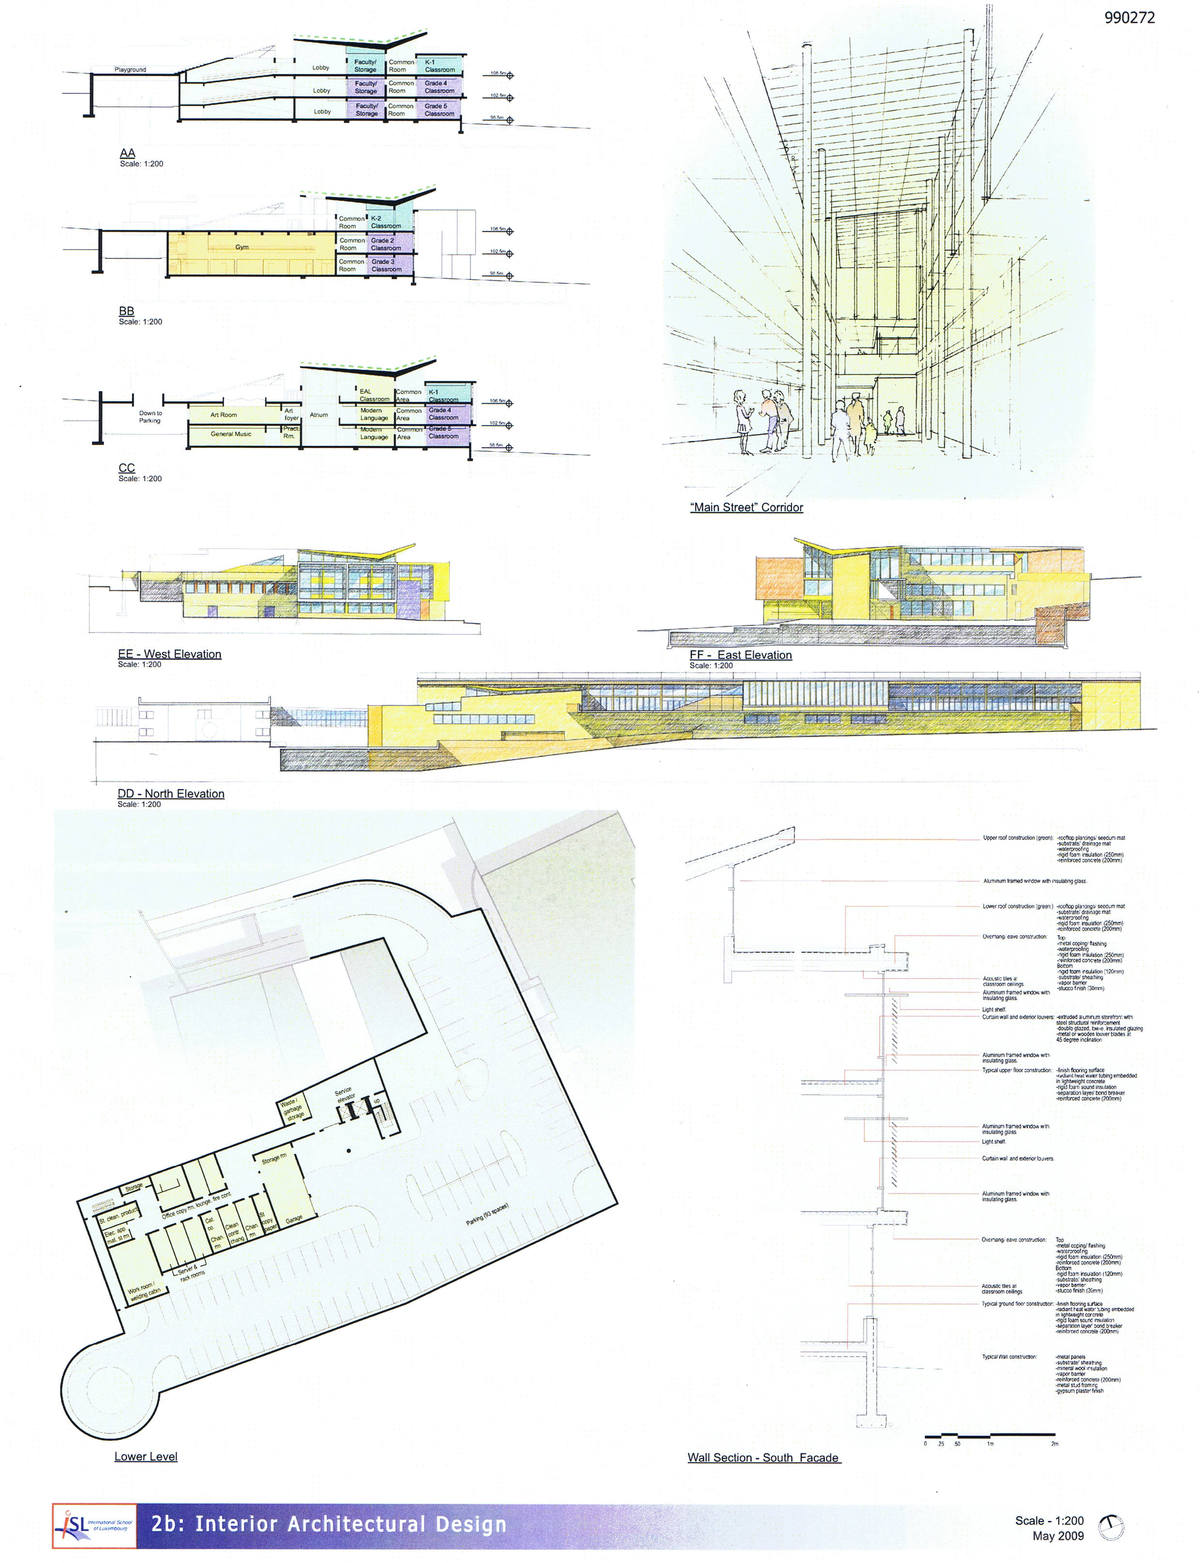 Sections, Elevations, Underground Parking Plan